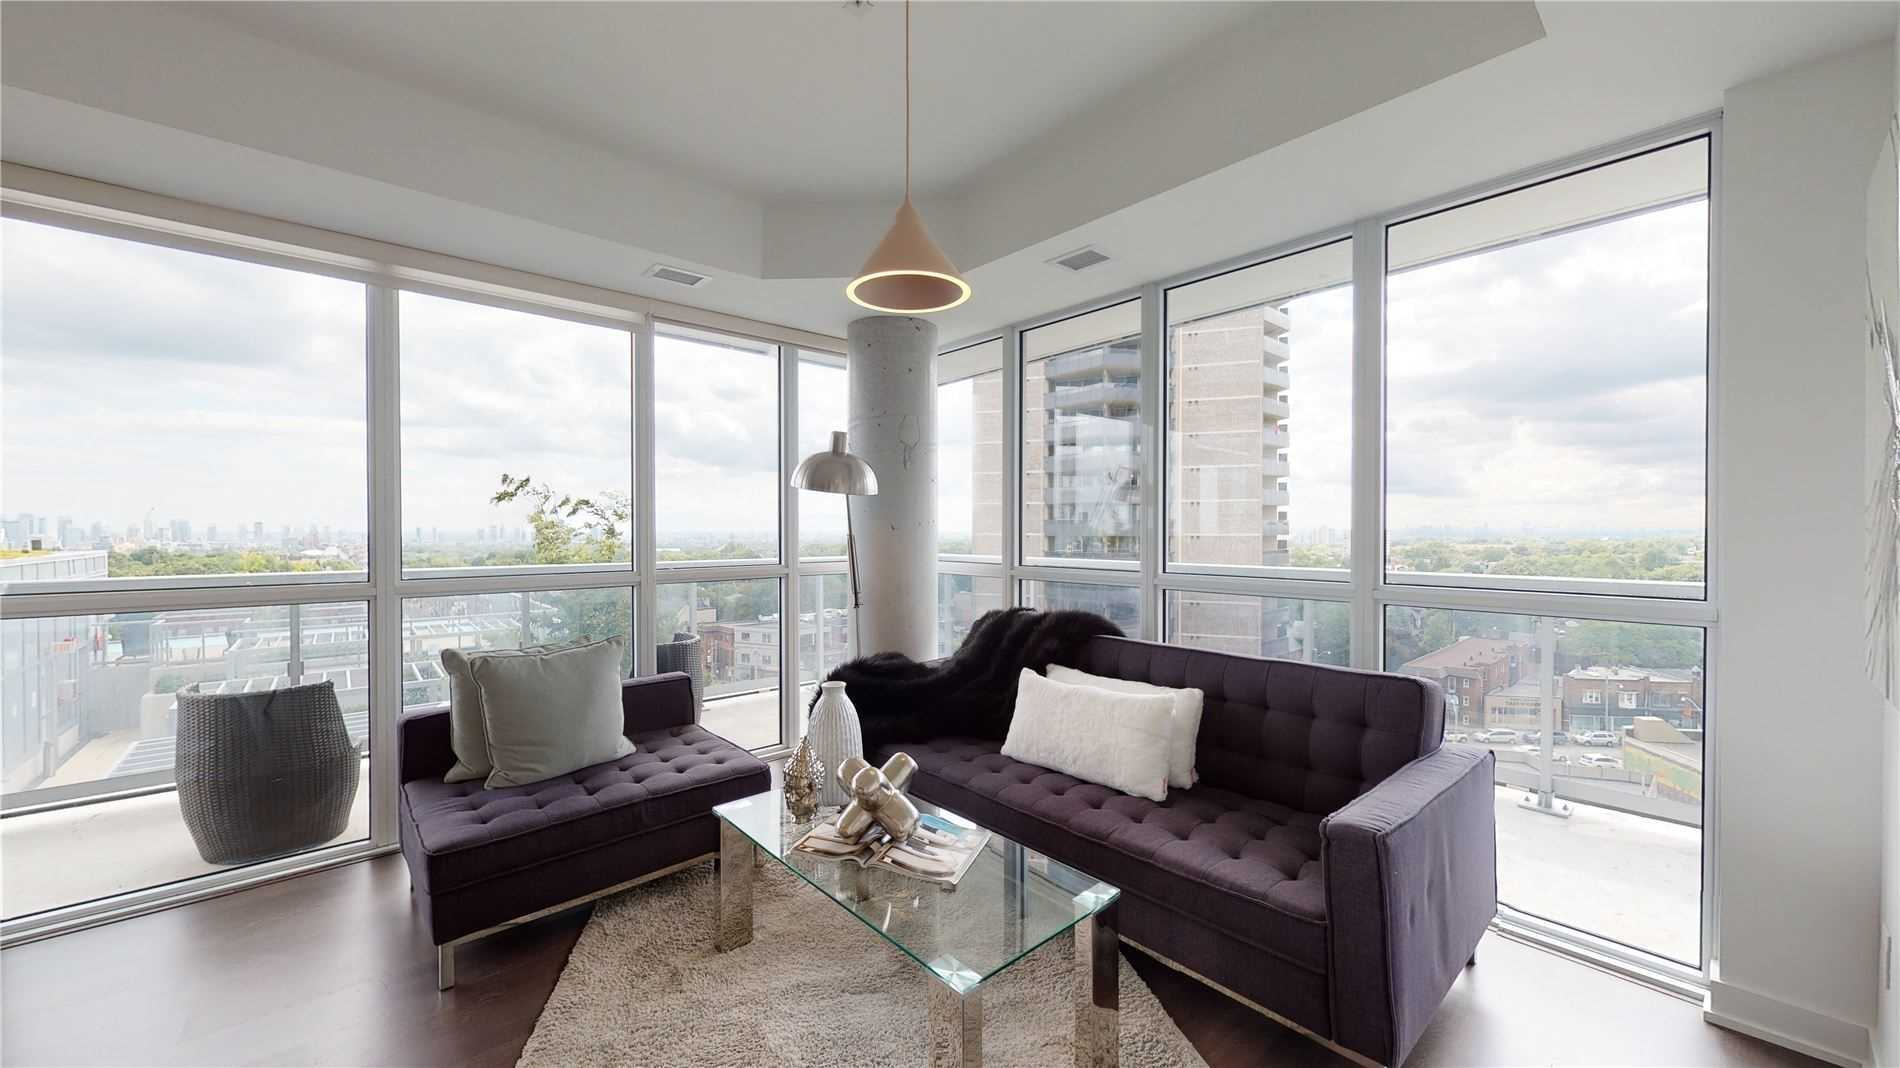 807-501-st-clair-ave-w